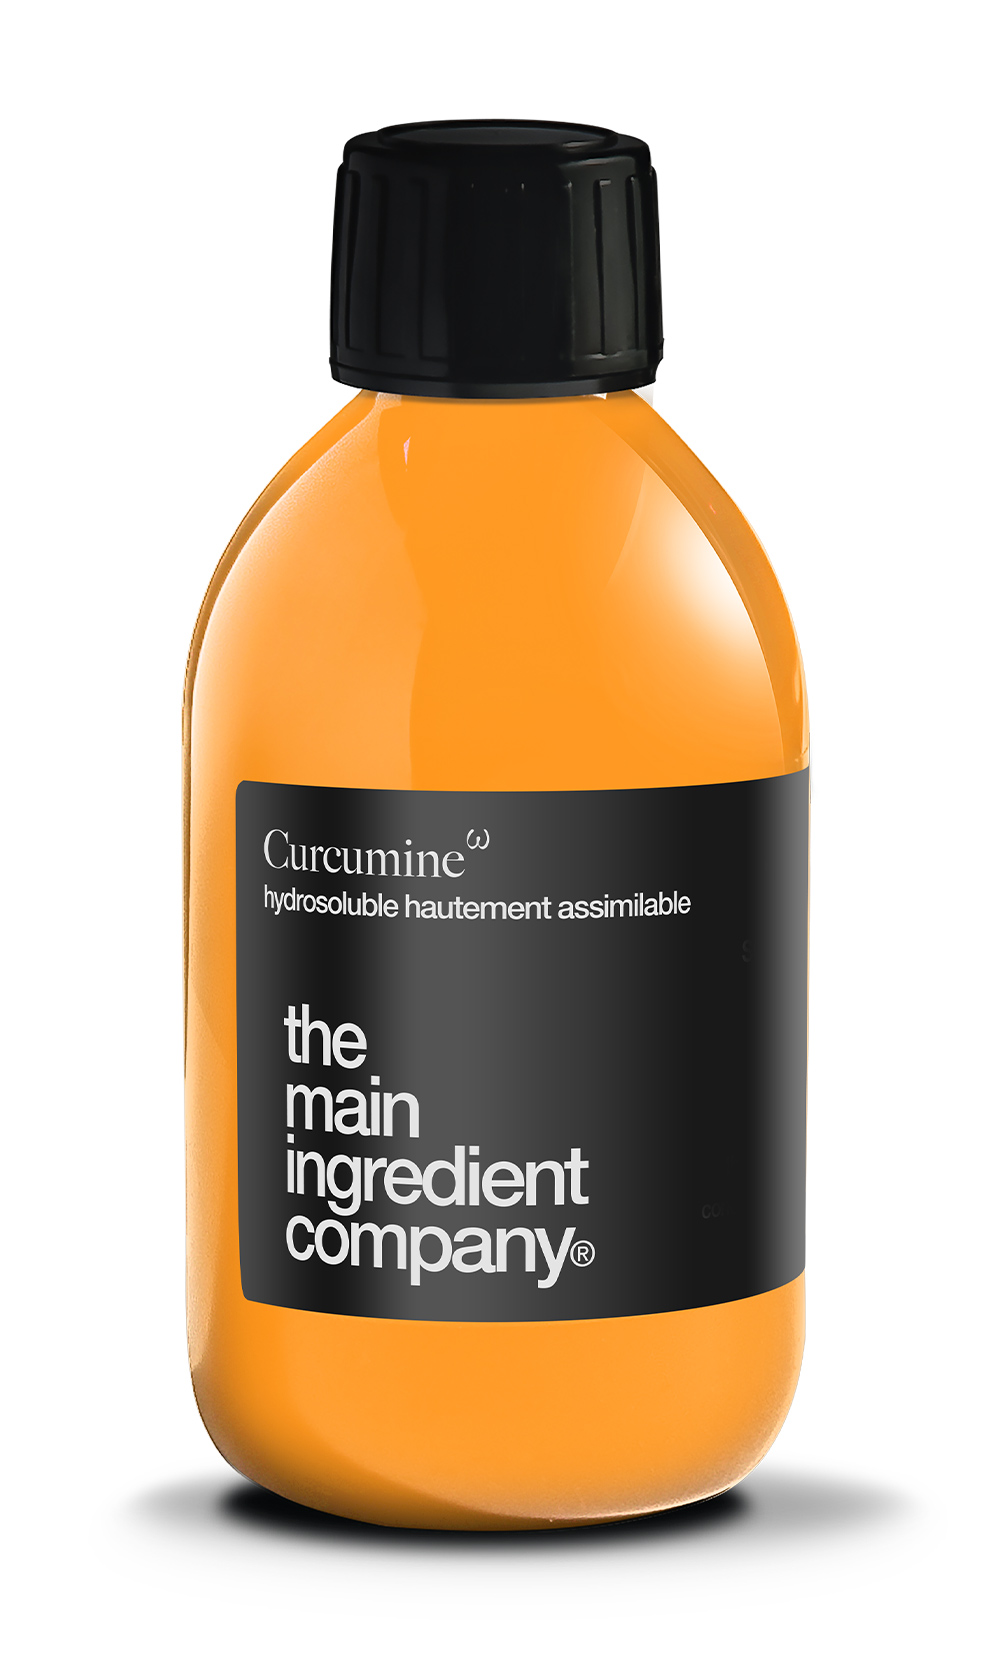 Curcumine technique, the main ingredient company